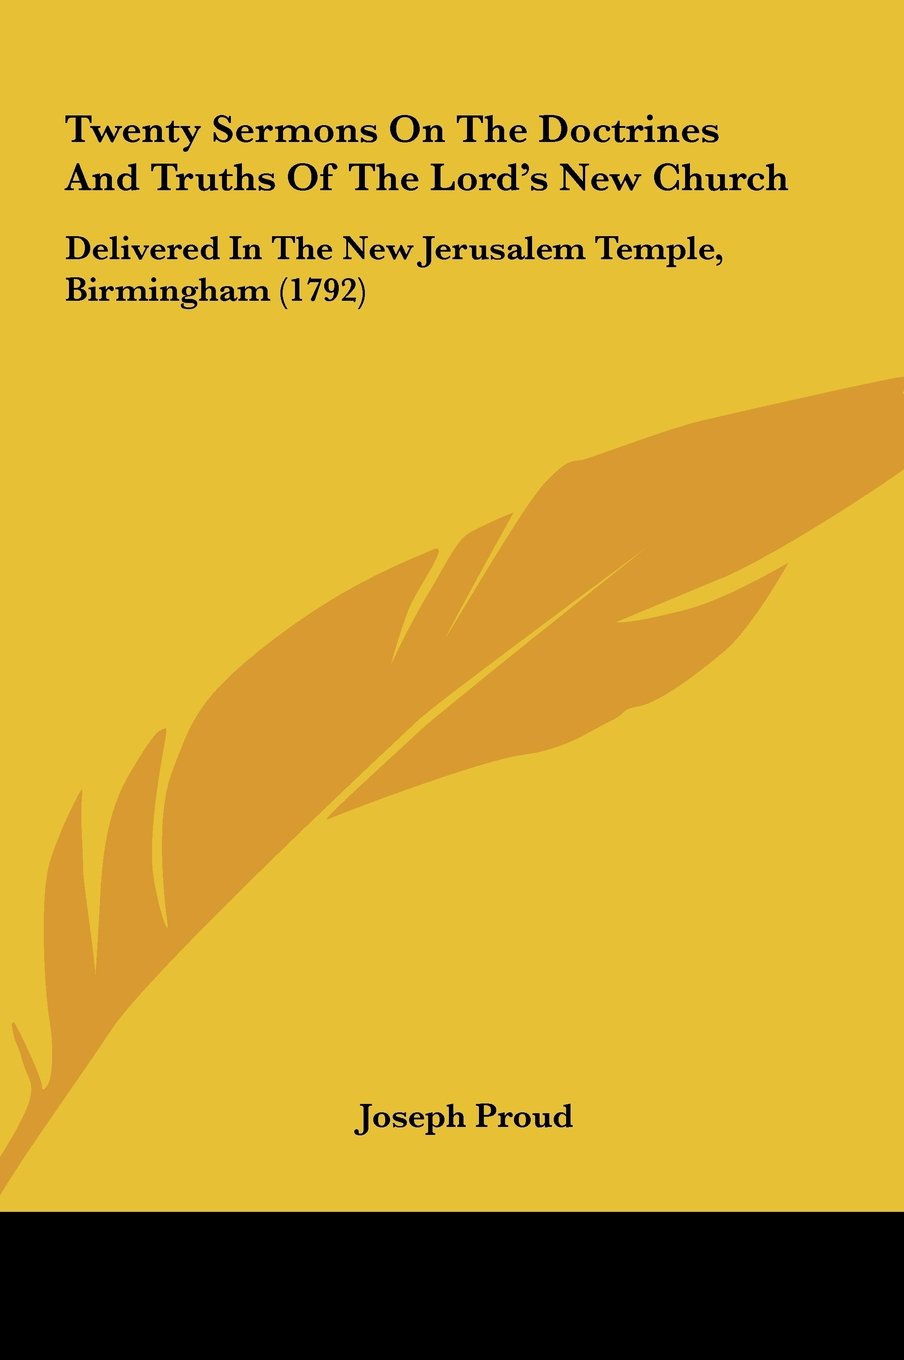 Download Twenty Sermons on the Doctrines and Truths of the Lord's New Church: Delivered in the New Jerusalem Temple, Birmingham (1792) pdf